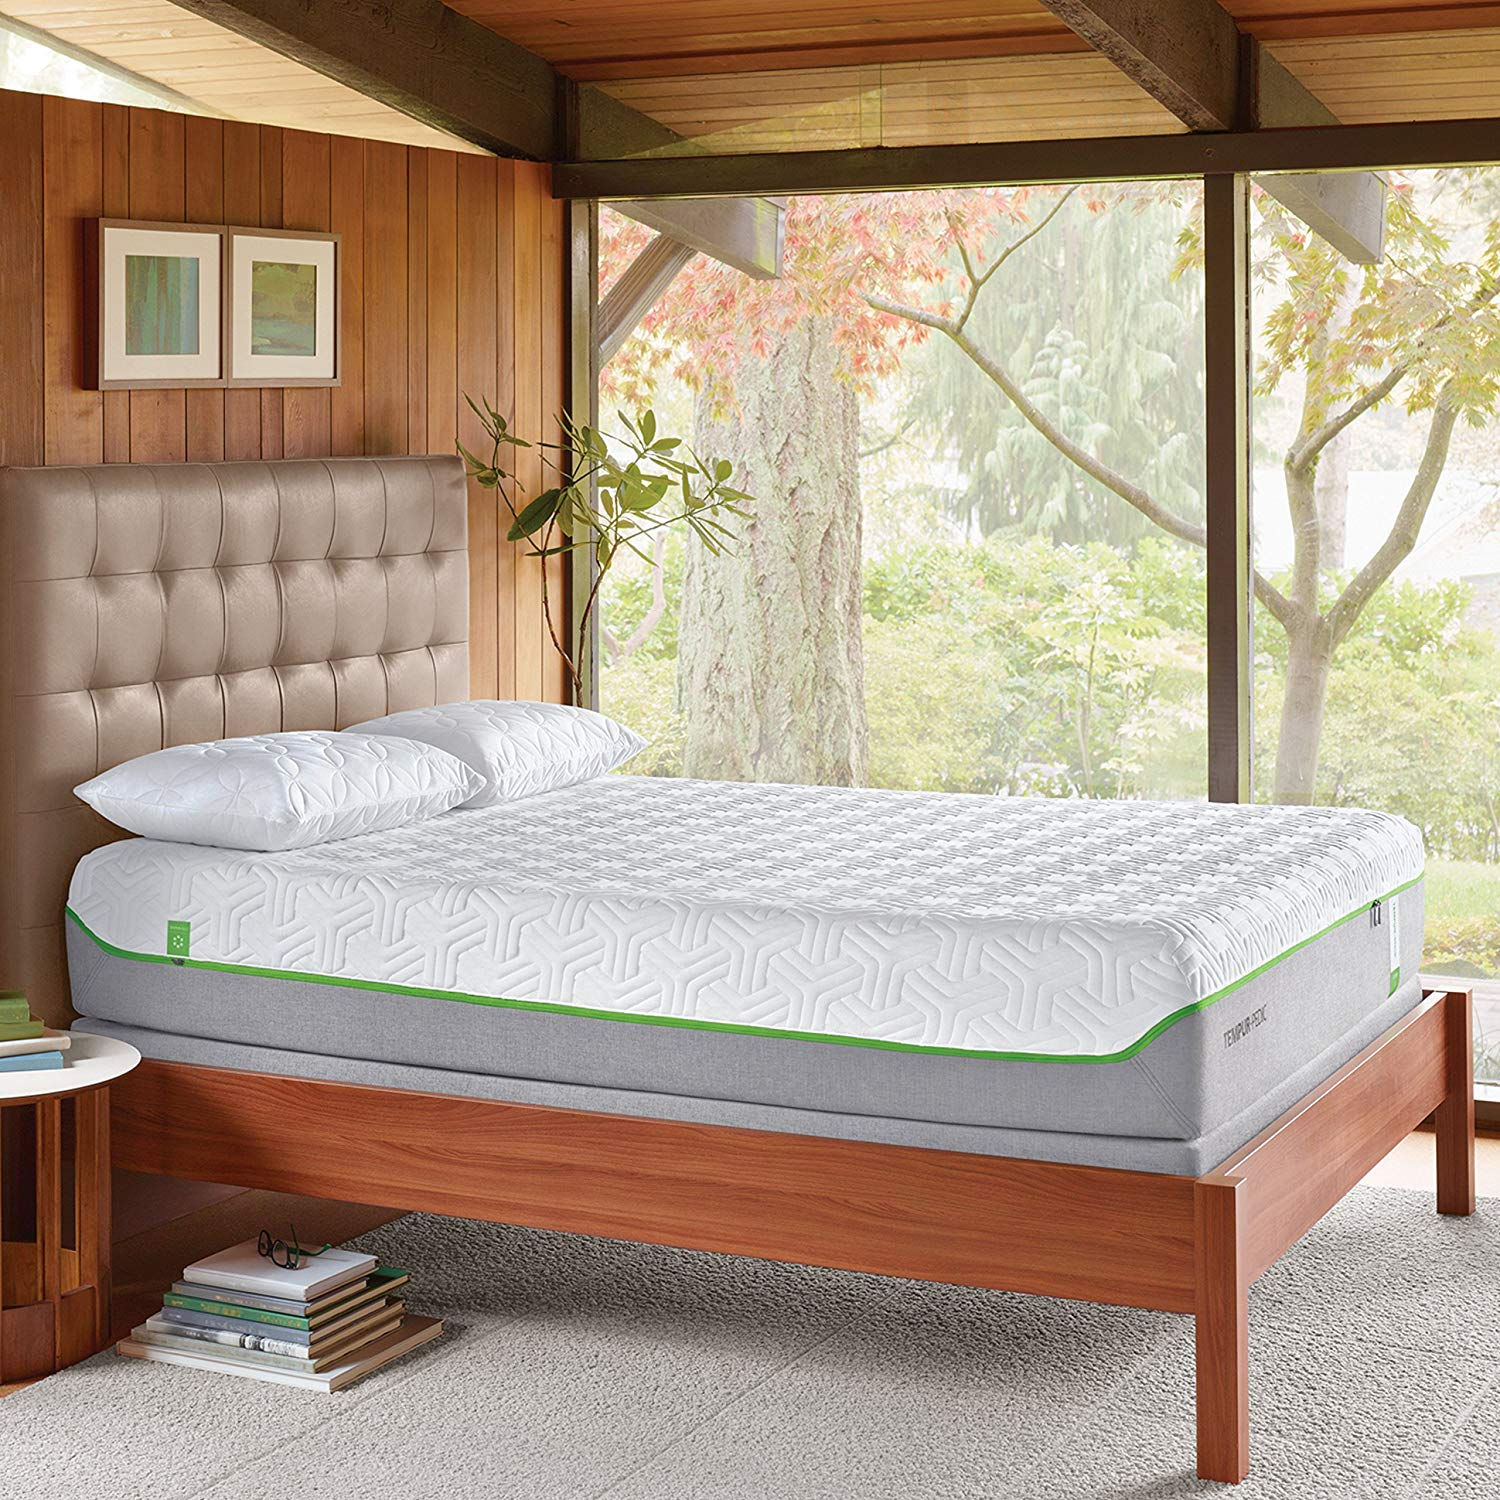 Flex Hybrid Supreme Tempurpedic Reviews By www.snoremagazine.com